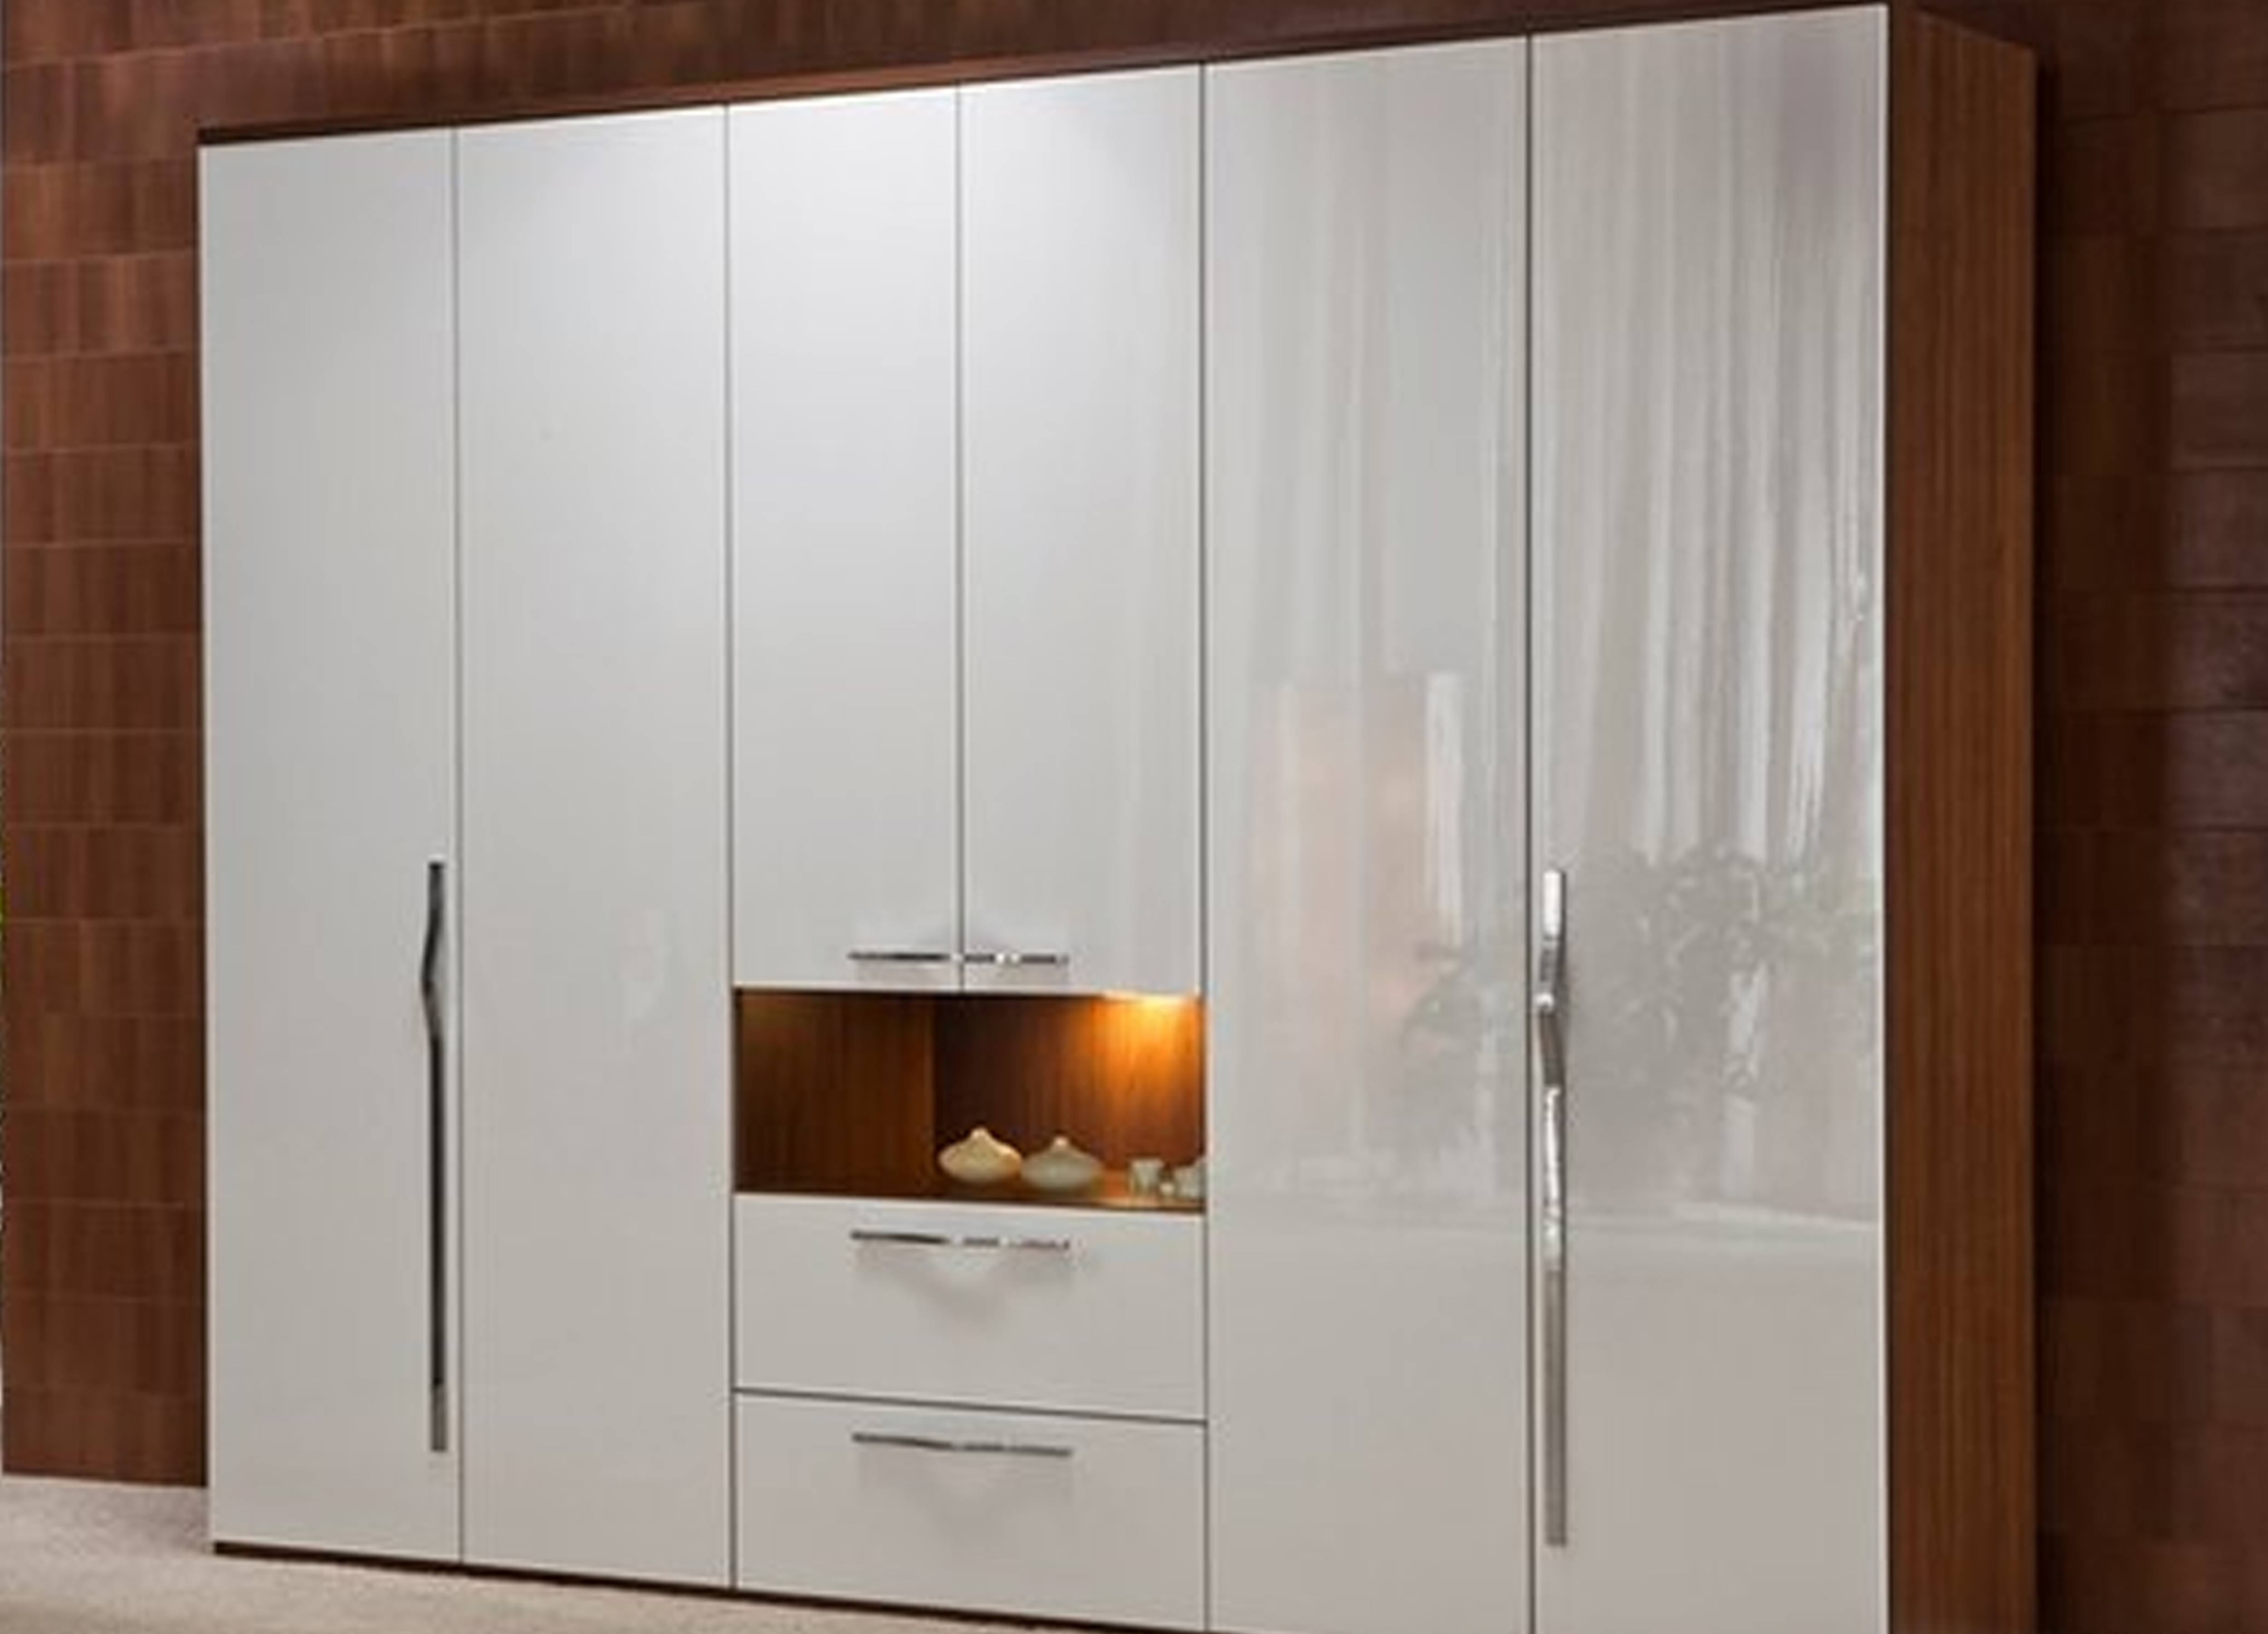 Permalink to Modular Wardrobe Kitchen Cabinet